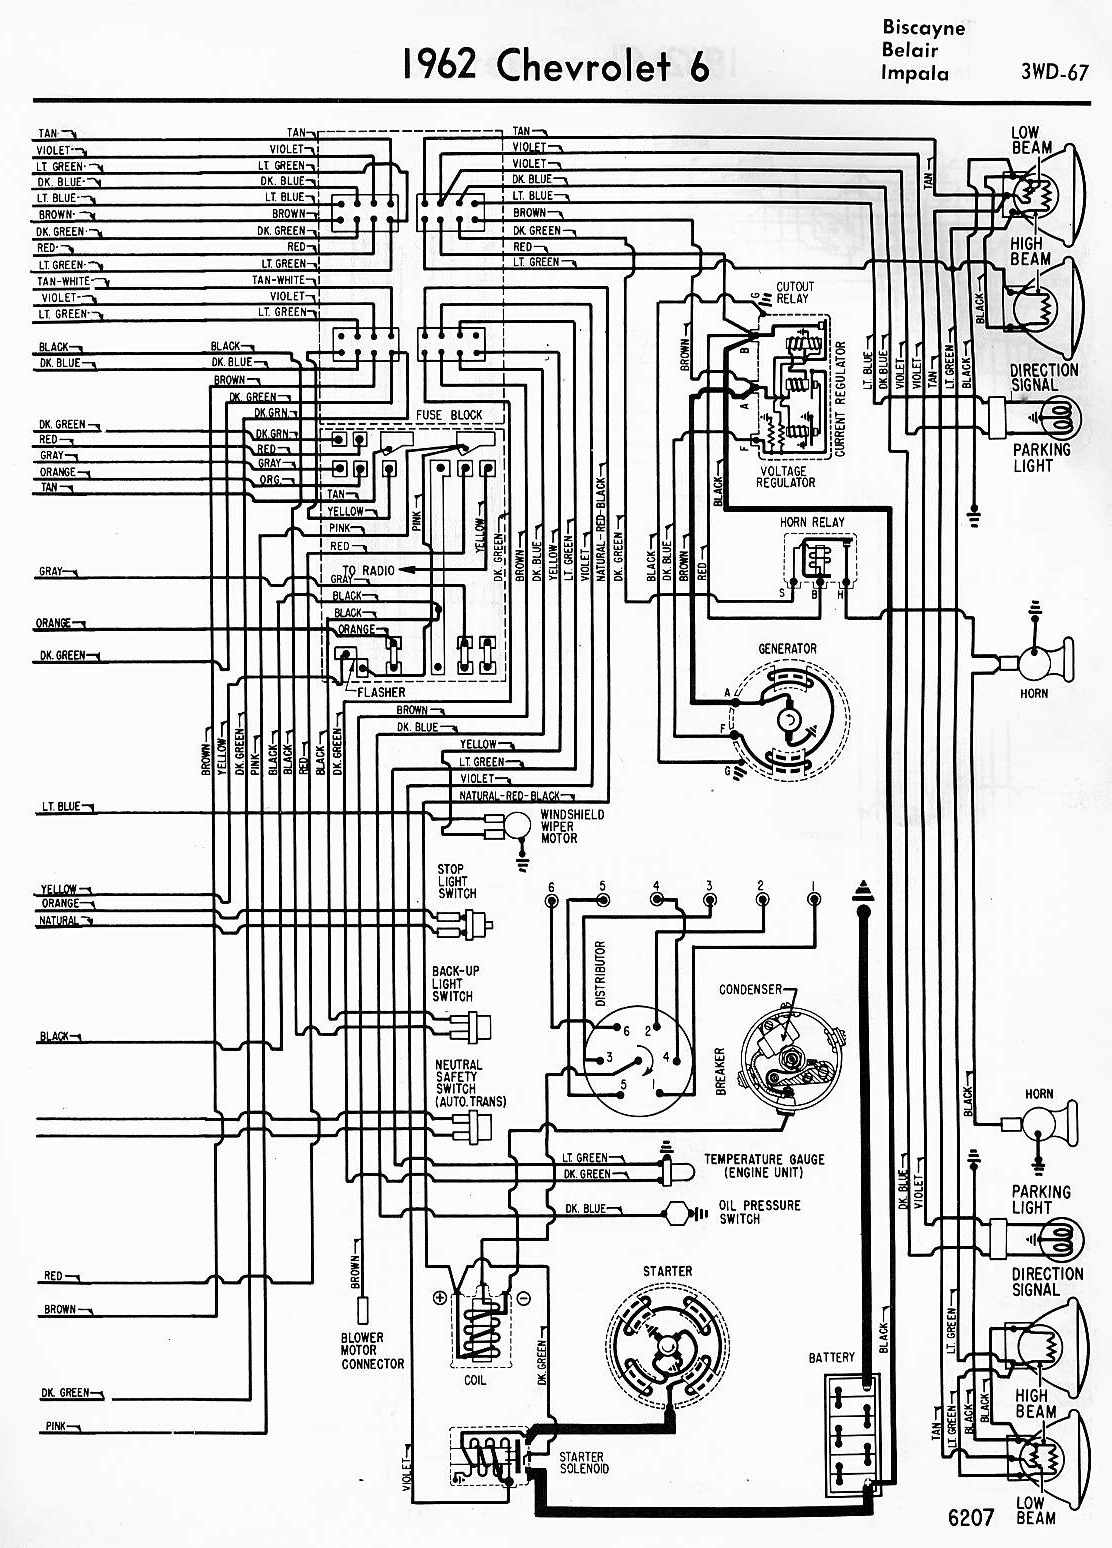 Electrical+Wiring+Diagram+Of+1964+Chevrolet+6 electrical wiring diagram of 1962 chevrolet 6 all about wiring 1961 impala wiper motor wiring diagram at bayanpartner.co